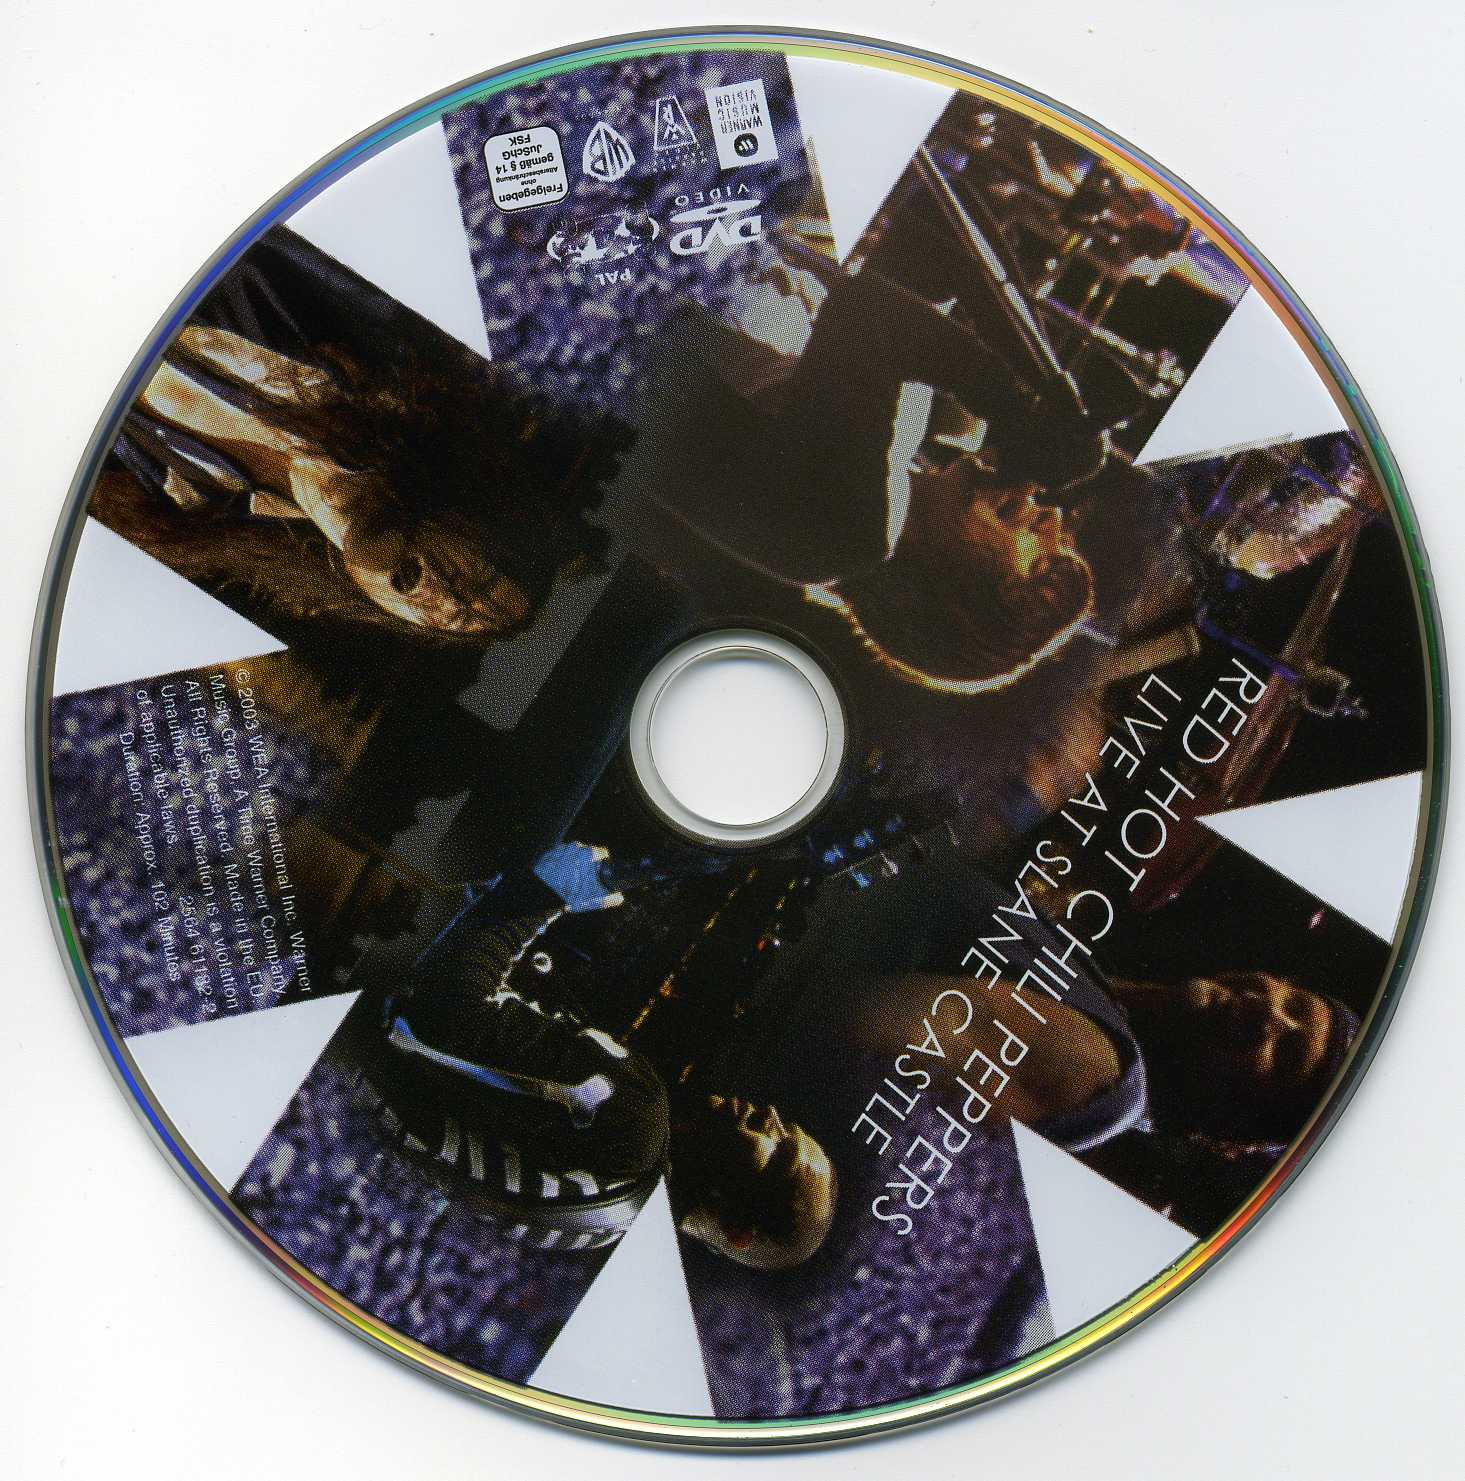 cd red hot chili peppers slane castle